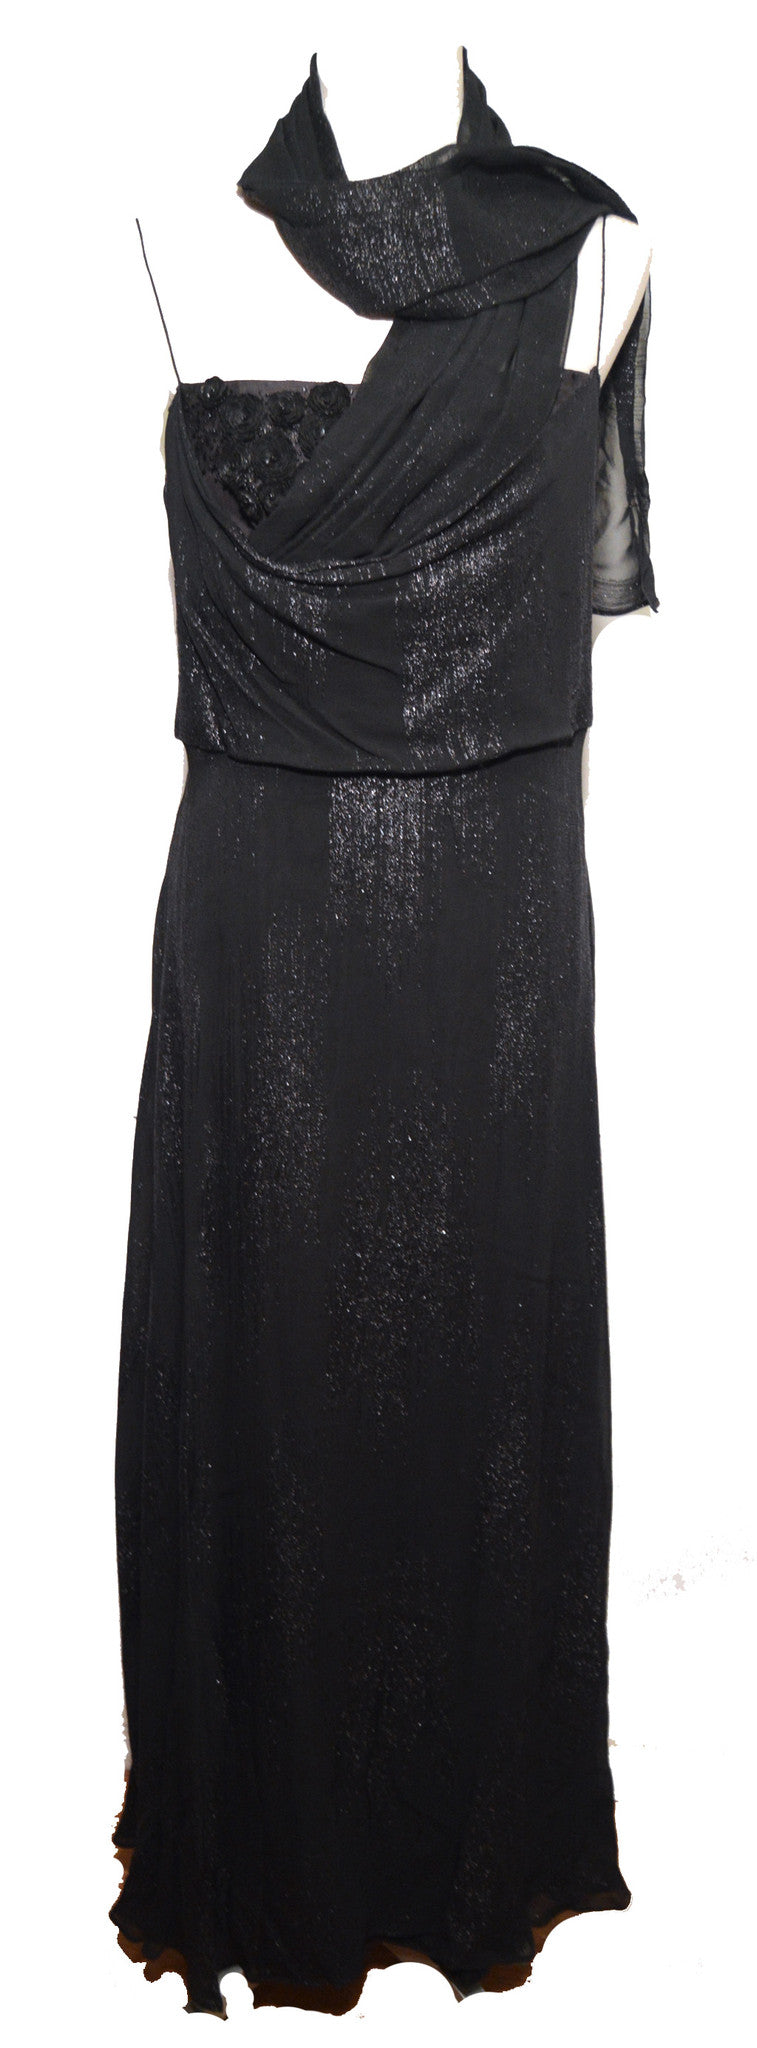 Balmain 1990s Black Embellished Evening Gown with Scarf Dress Balmain Philadelphia Vintage and Textiles - 1